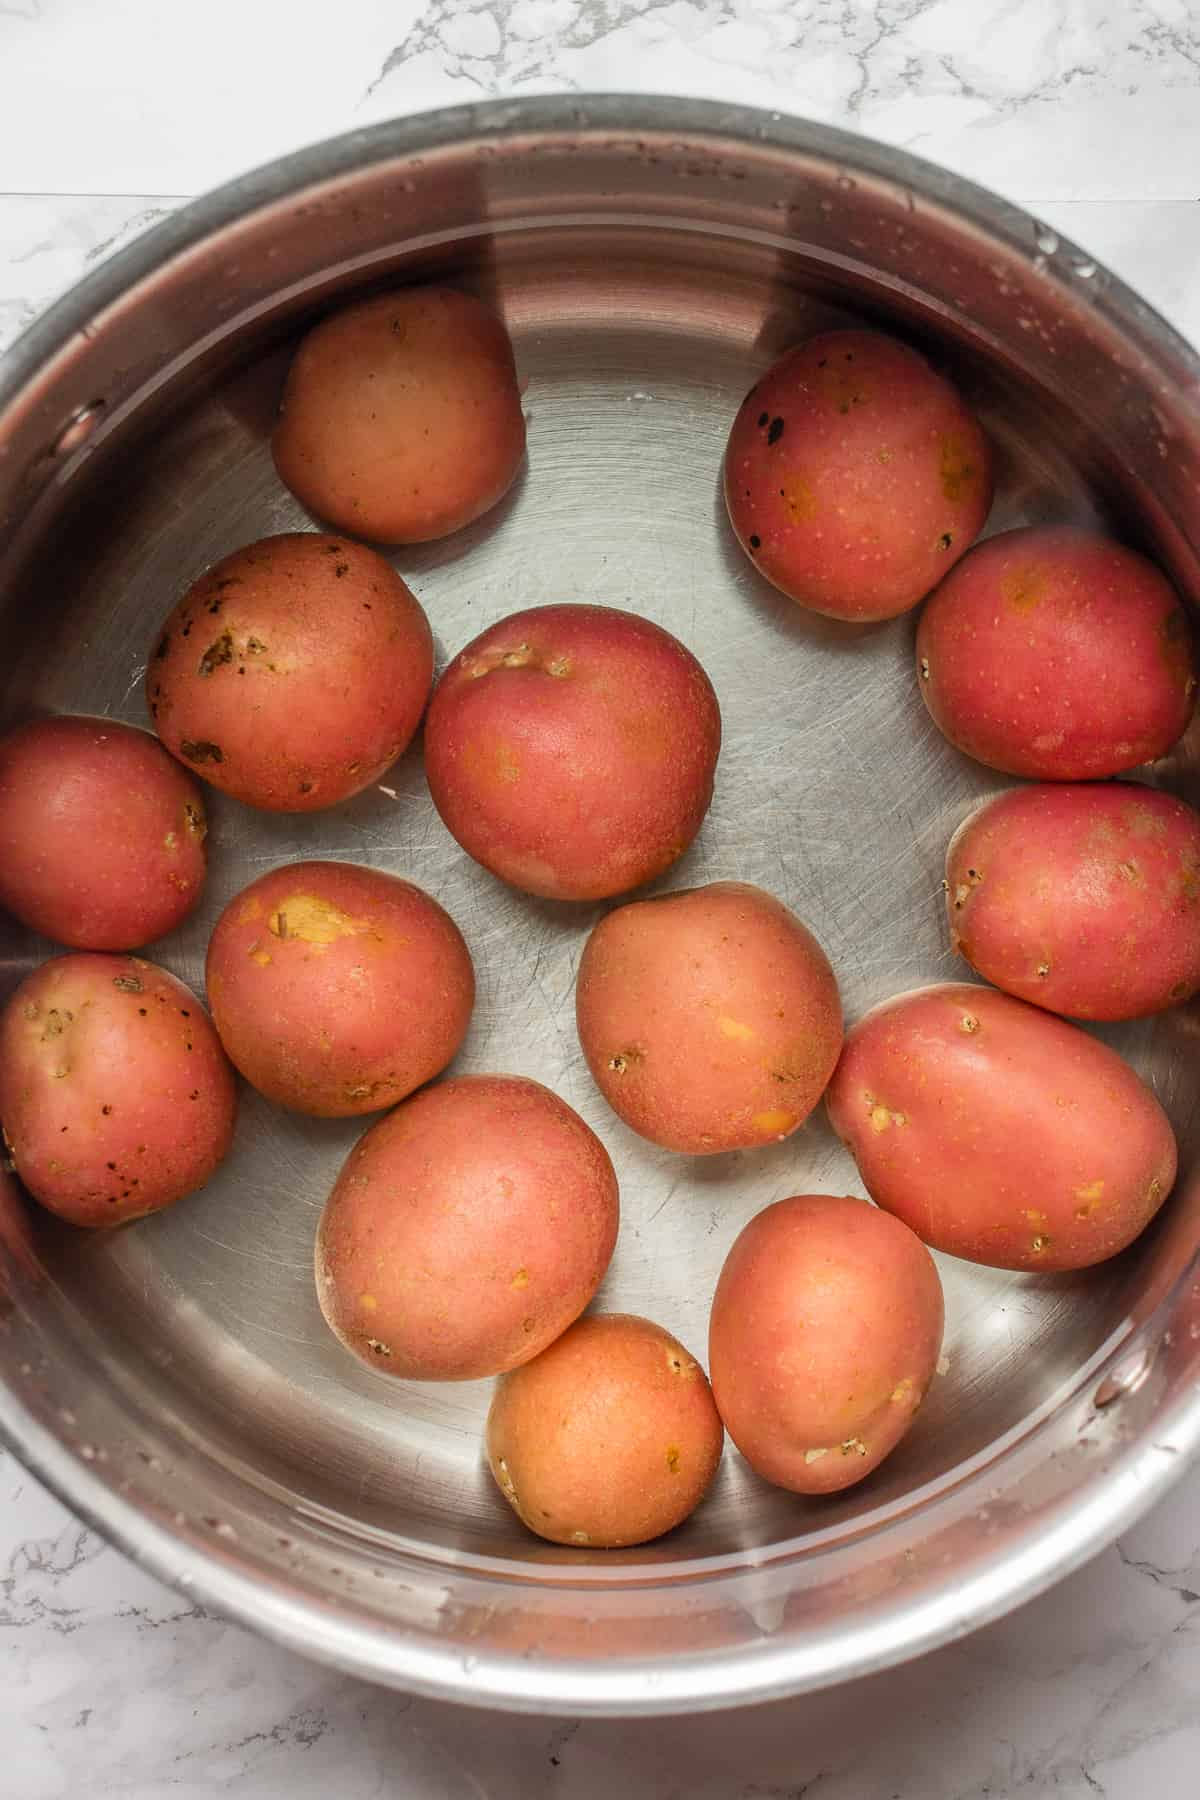 Red potatoes in a pot